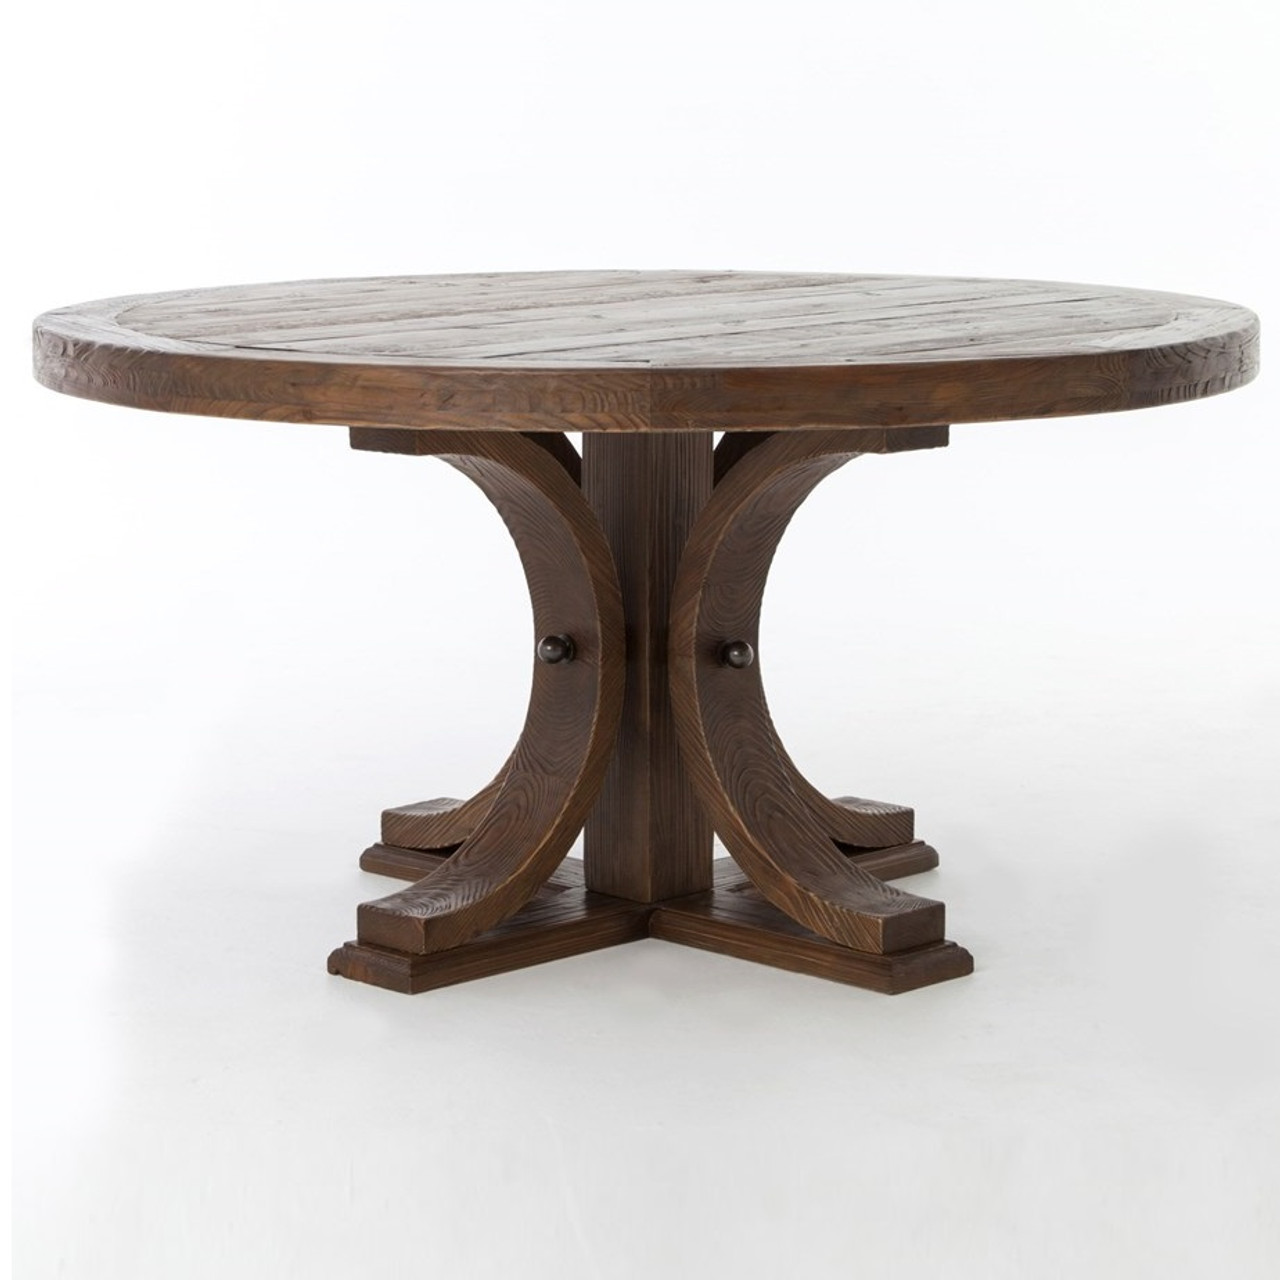 Lugo Reclaimed Wood Round Pedestal Dining Table Zin Home - 60 inch reclaimed wood dining table